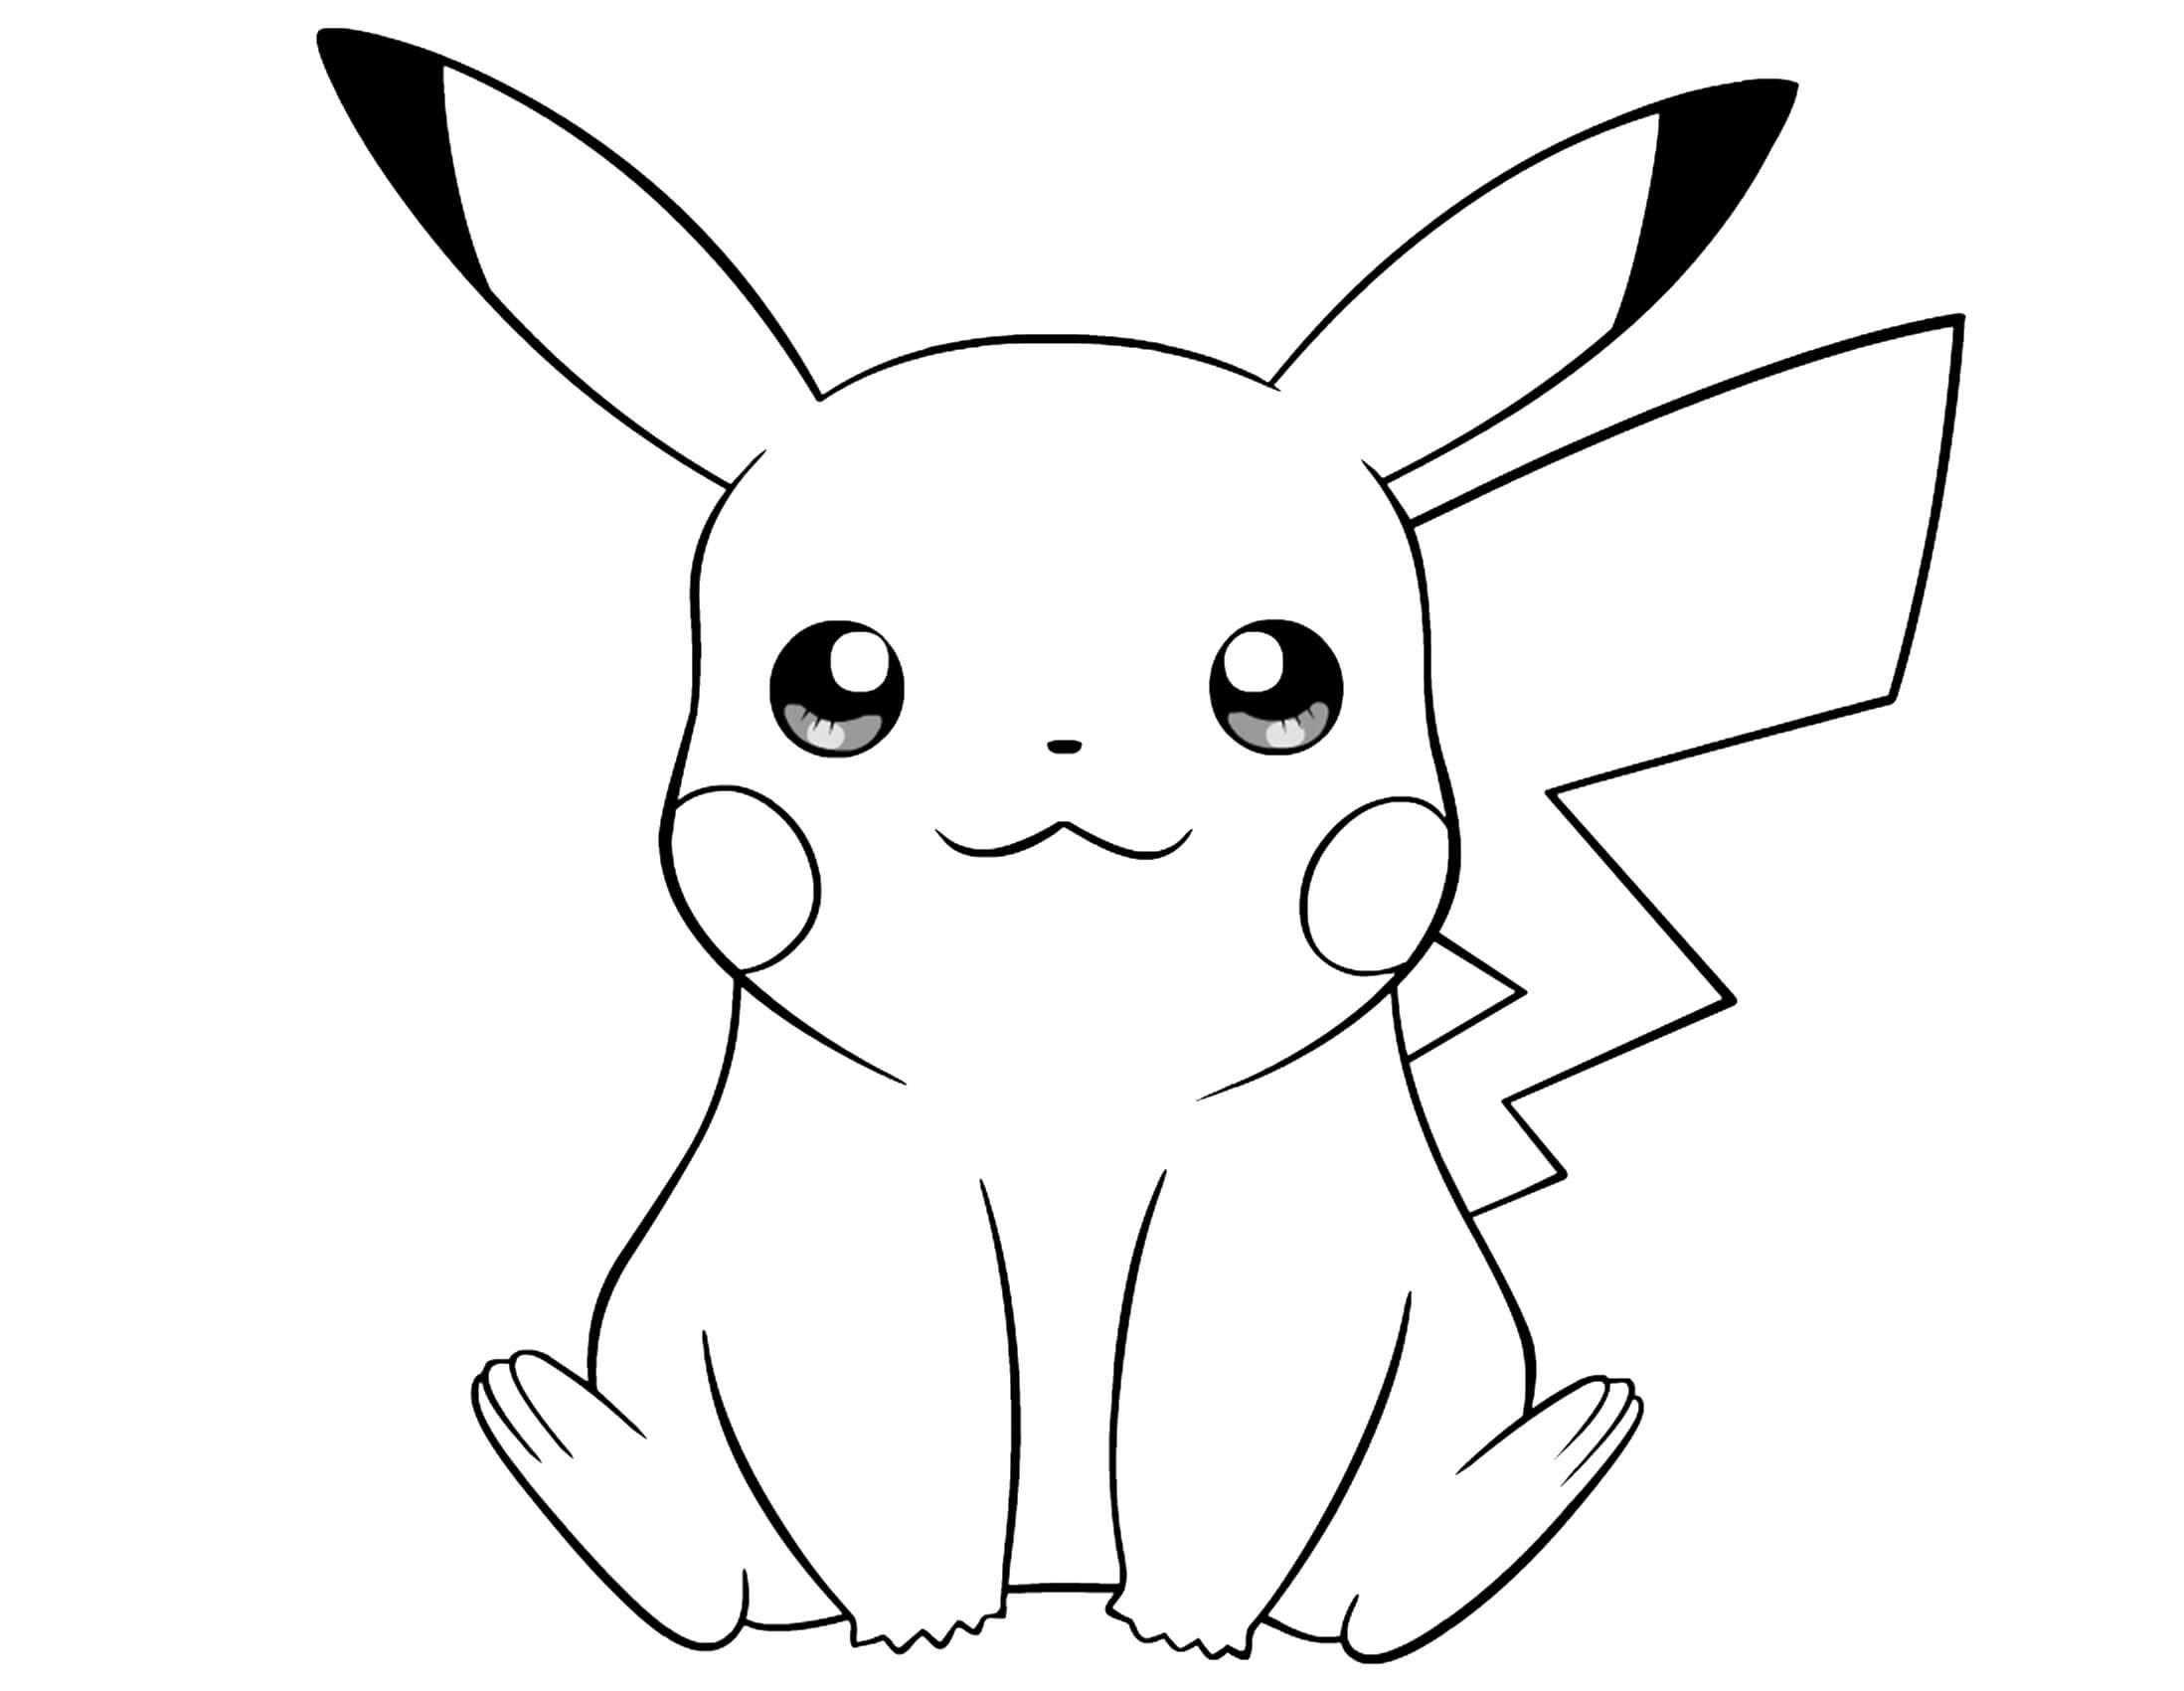 pikachu in action coloring pages - photo#20